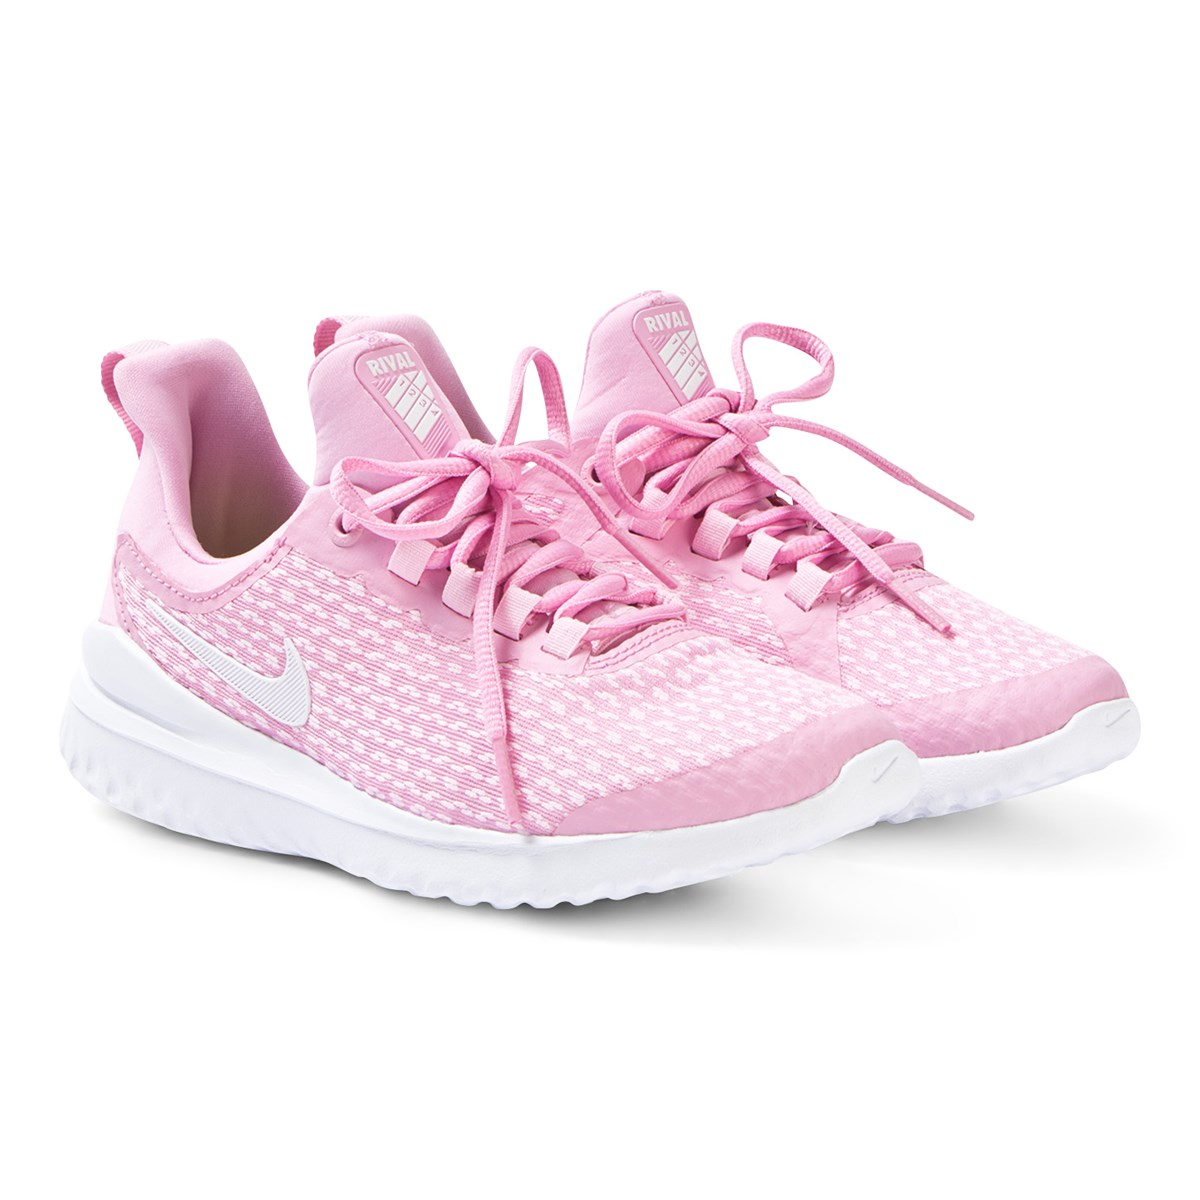 uk availability f0428 ddc94 Nike Pink Nike Renew Rival Running Trainers   AlexandAlexa